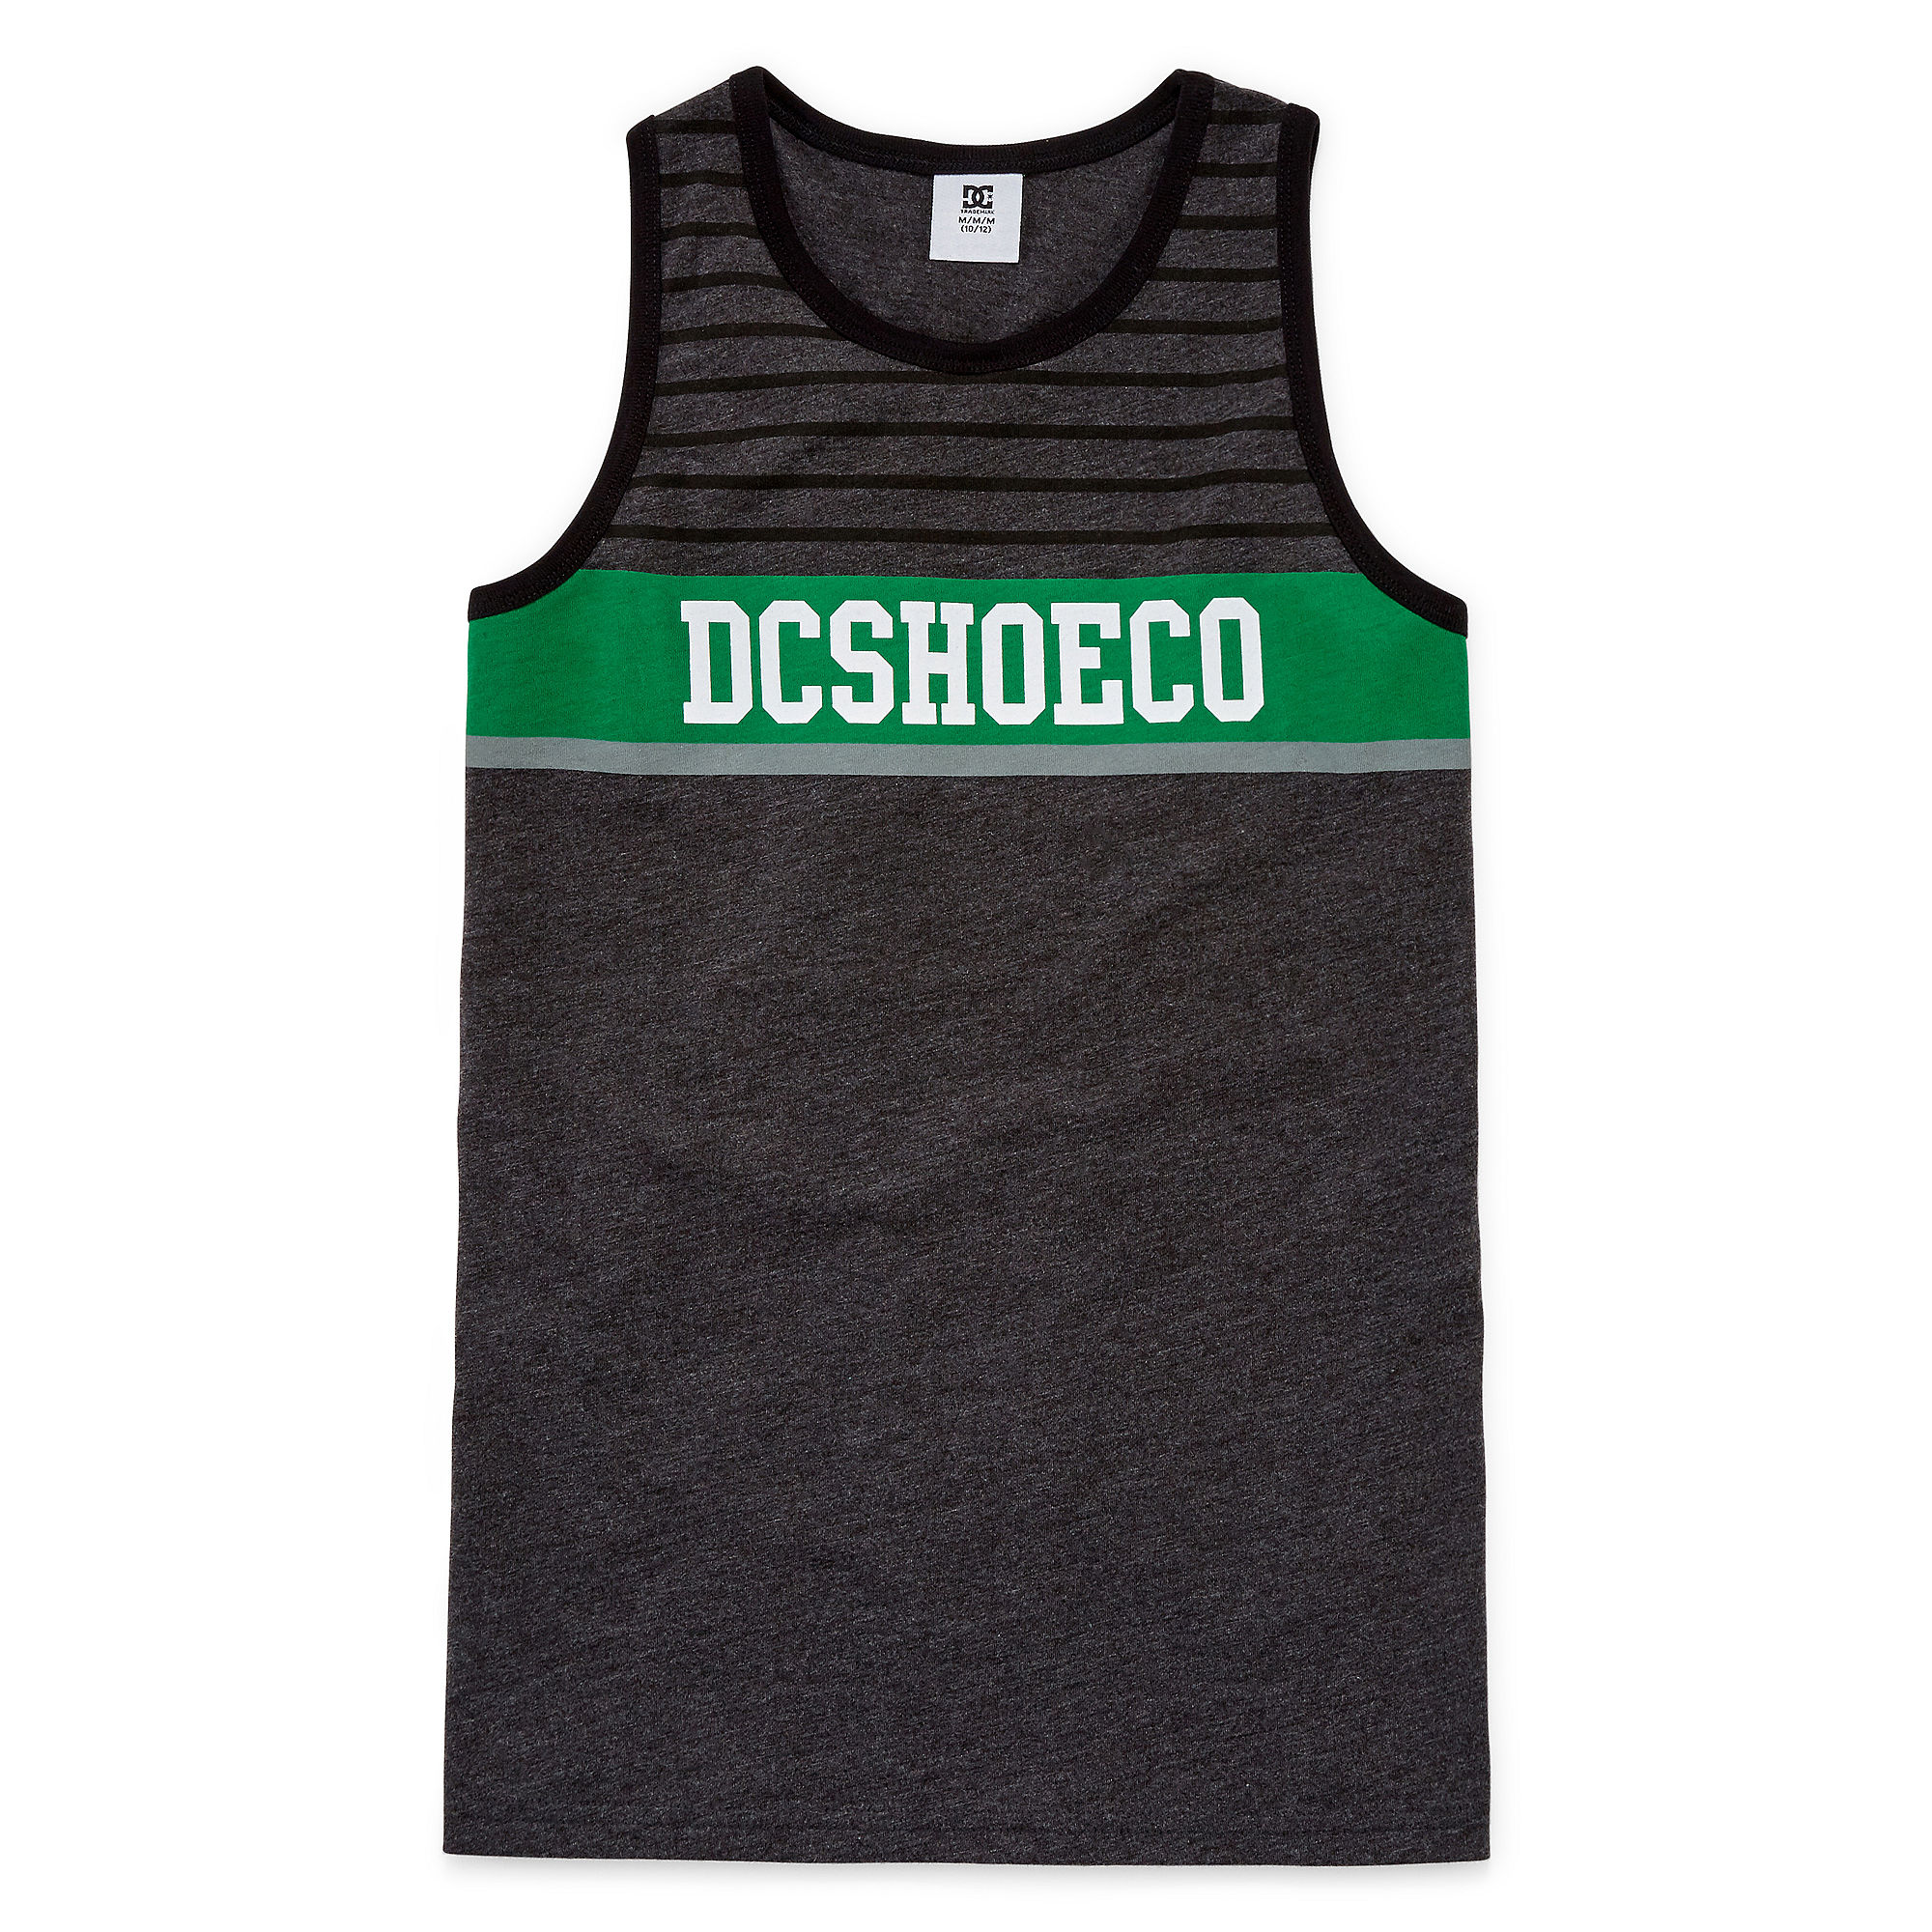 DC Shoes Co. Elementary Graphic Tank Top - Boys 8-20